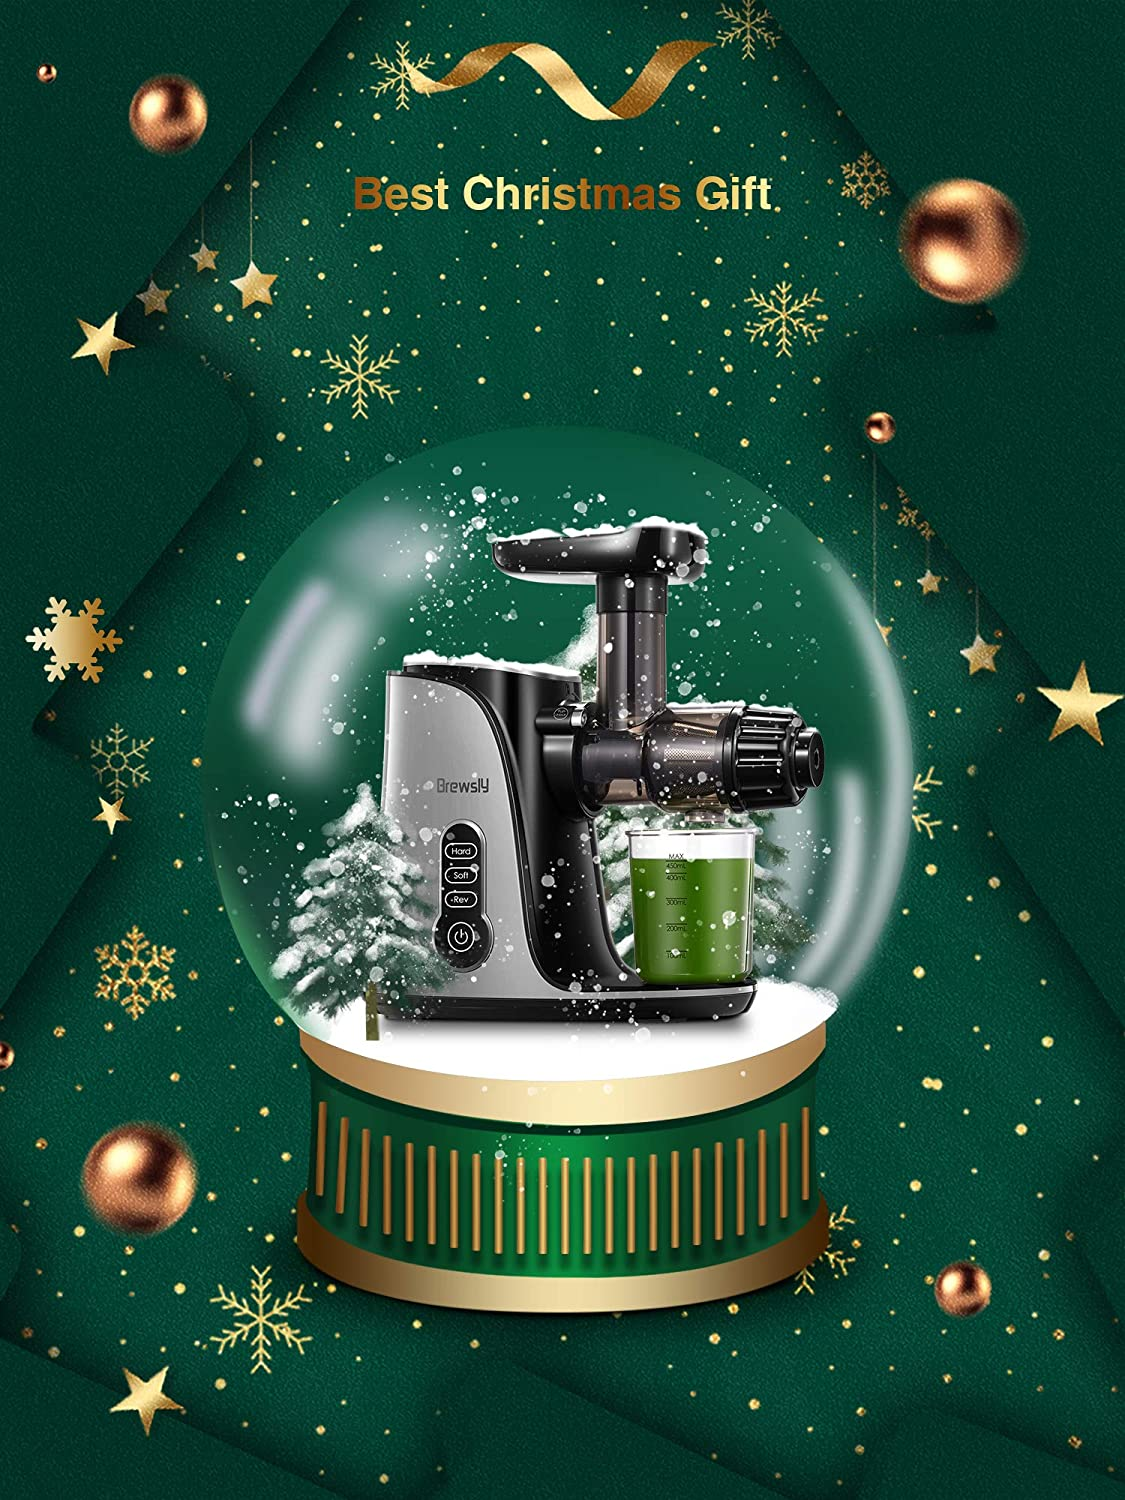 Easy to Clean /& High Juice Yield Brewsly 2-Speed Masticating Juicer Cold Press Slow Juicer Extract Fruits and Vegetables BPA Free Juicer Machines Juice Recipes for Fresh Juice